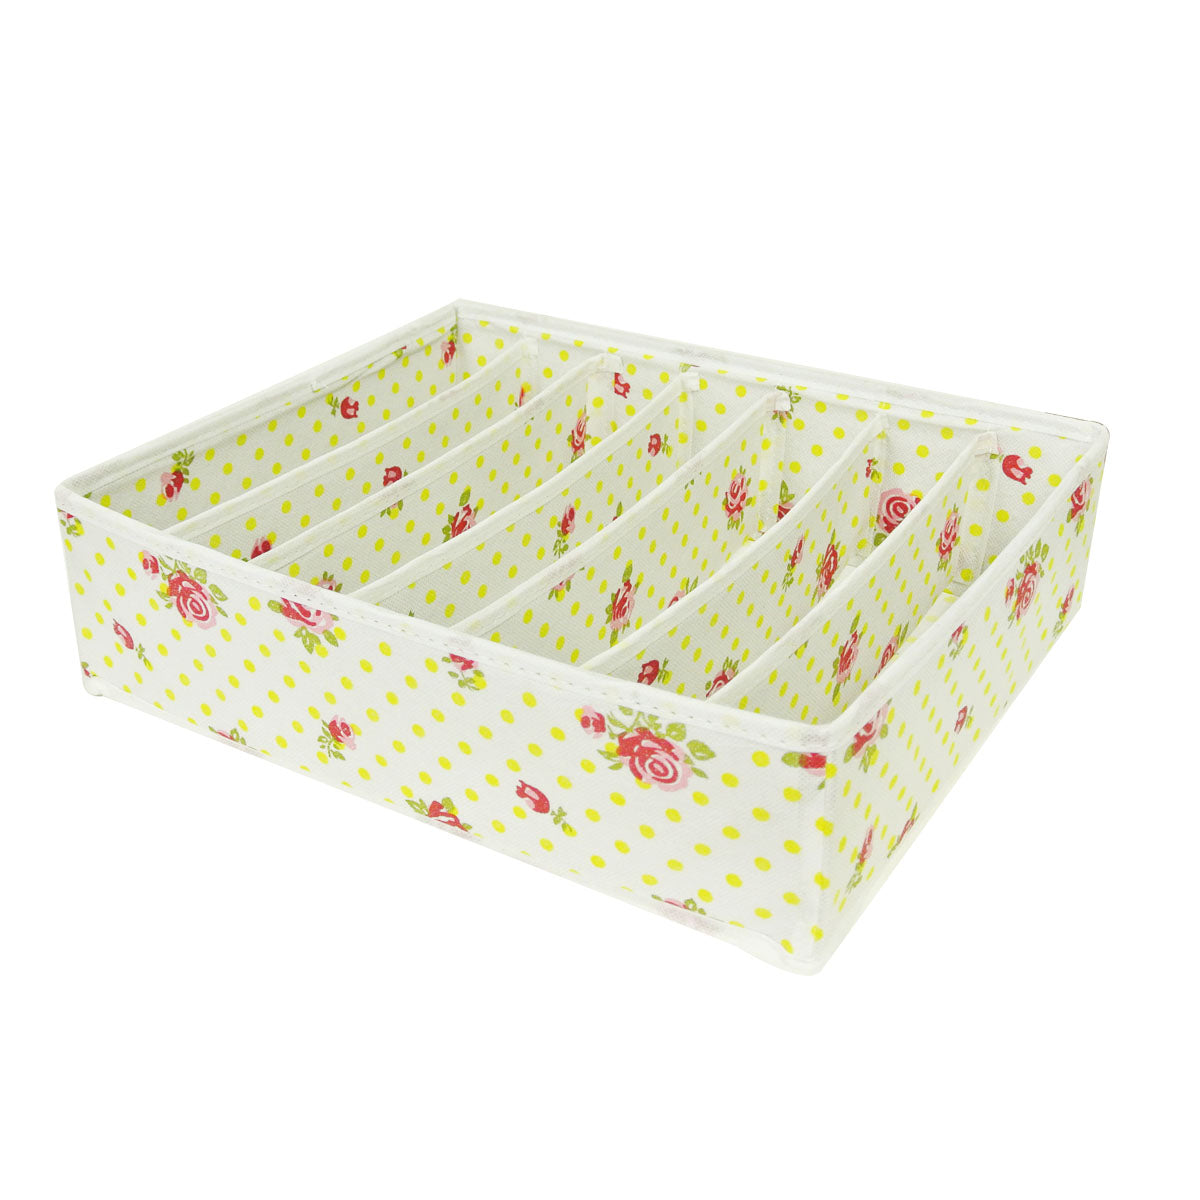 Set of 4 Foldable Closet Organizer Storage Box for Underwear and Socks